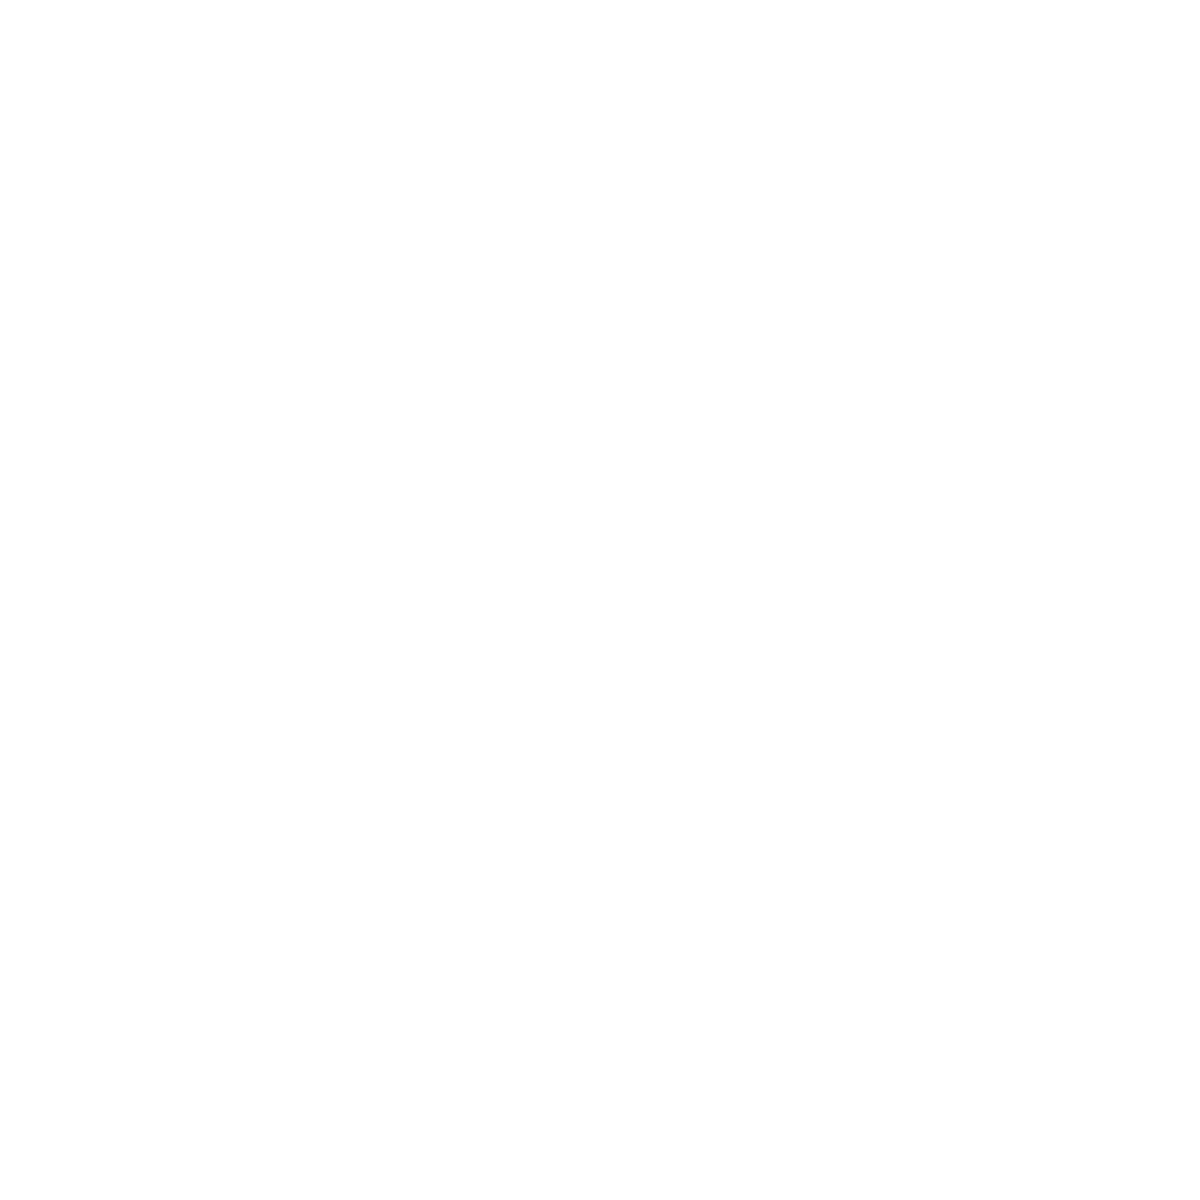 techcrunch-white